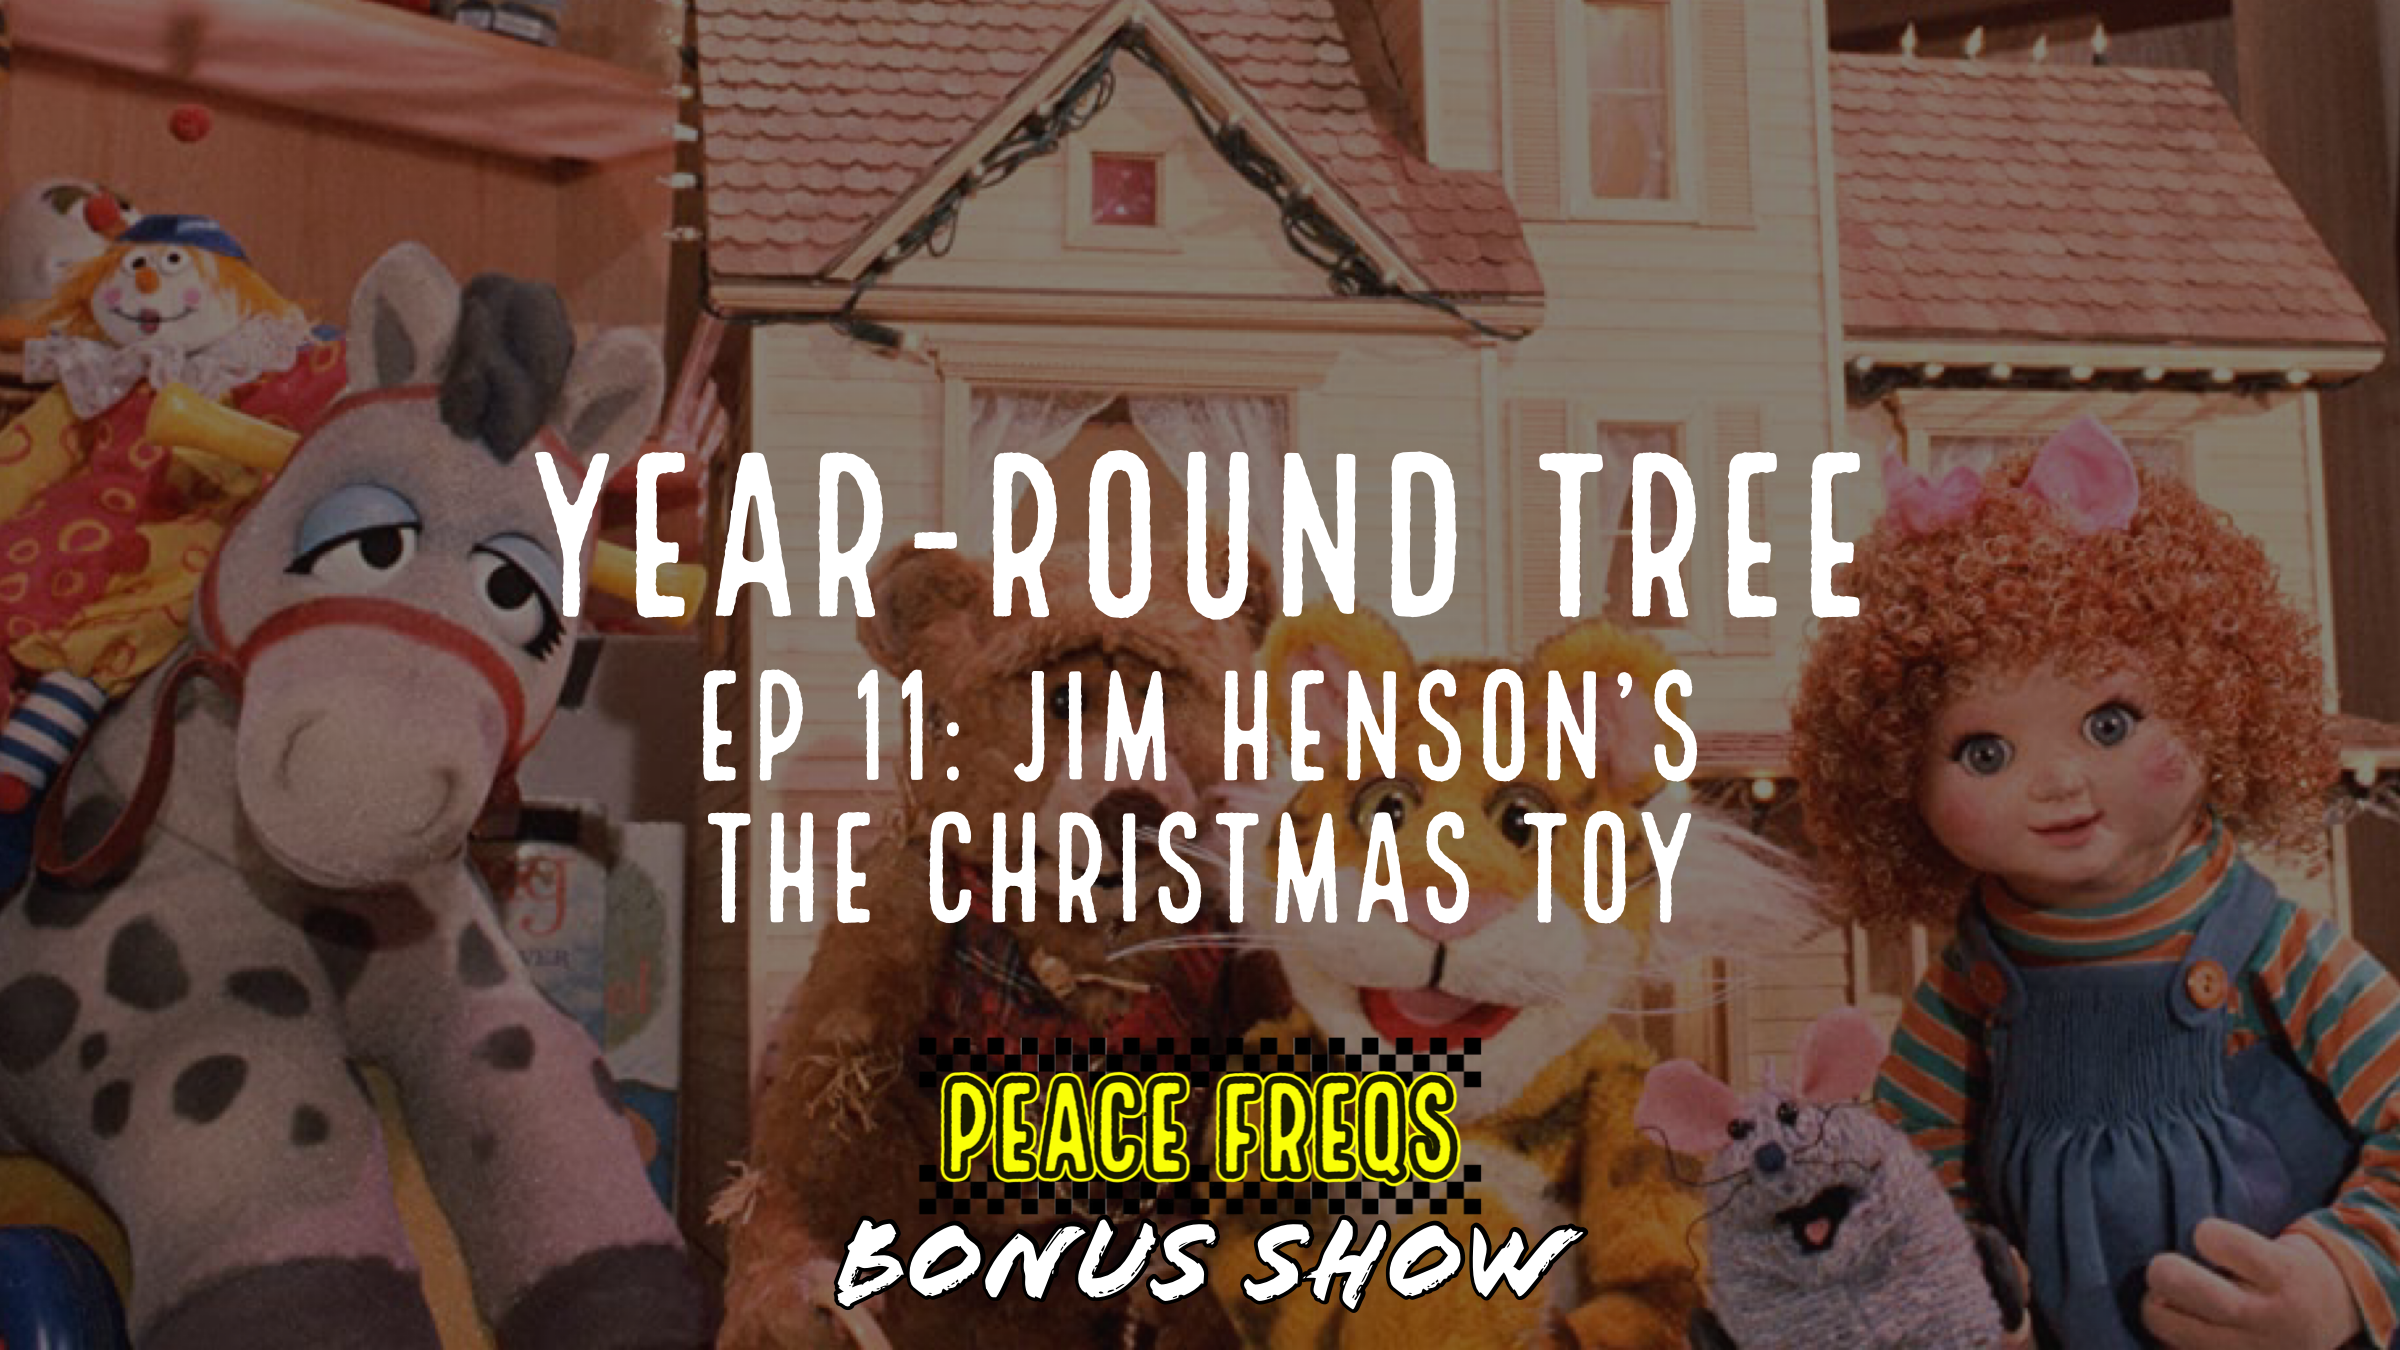 Jim Henson's The Christmas Toy Review – Year-Round Tree 011